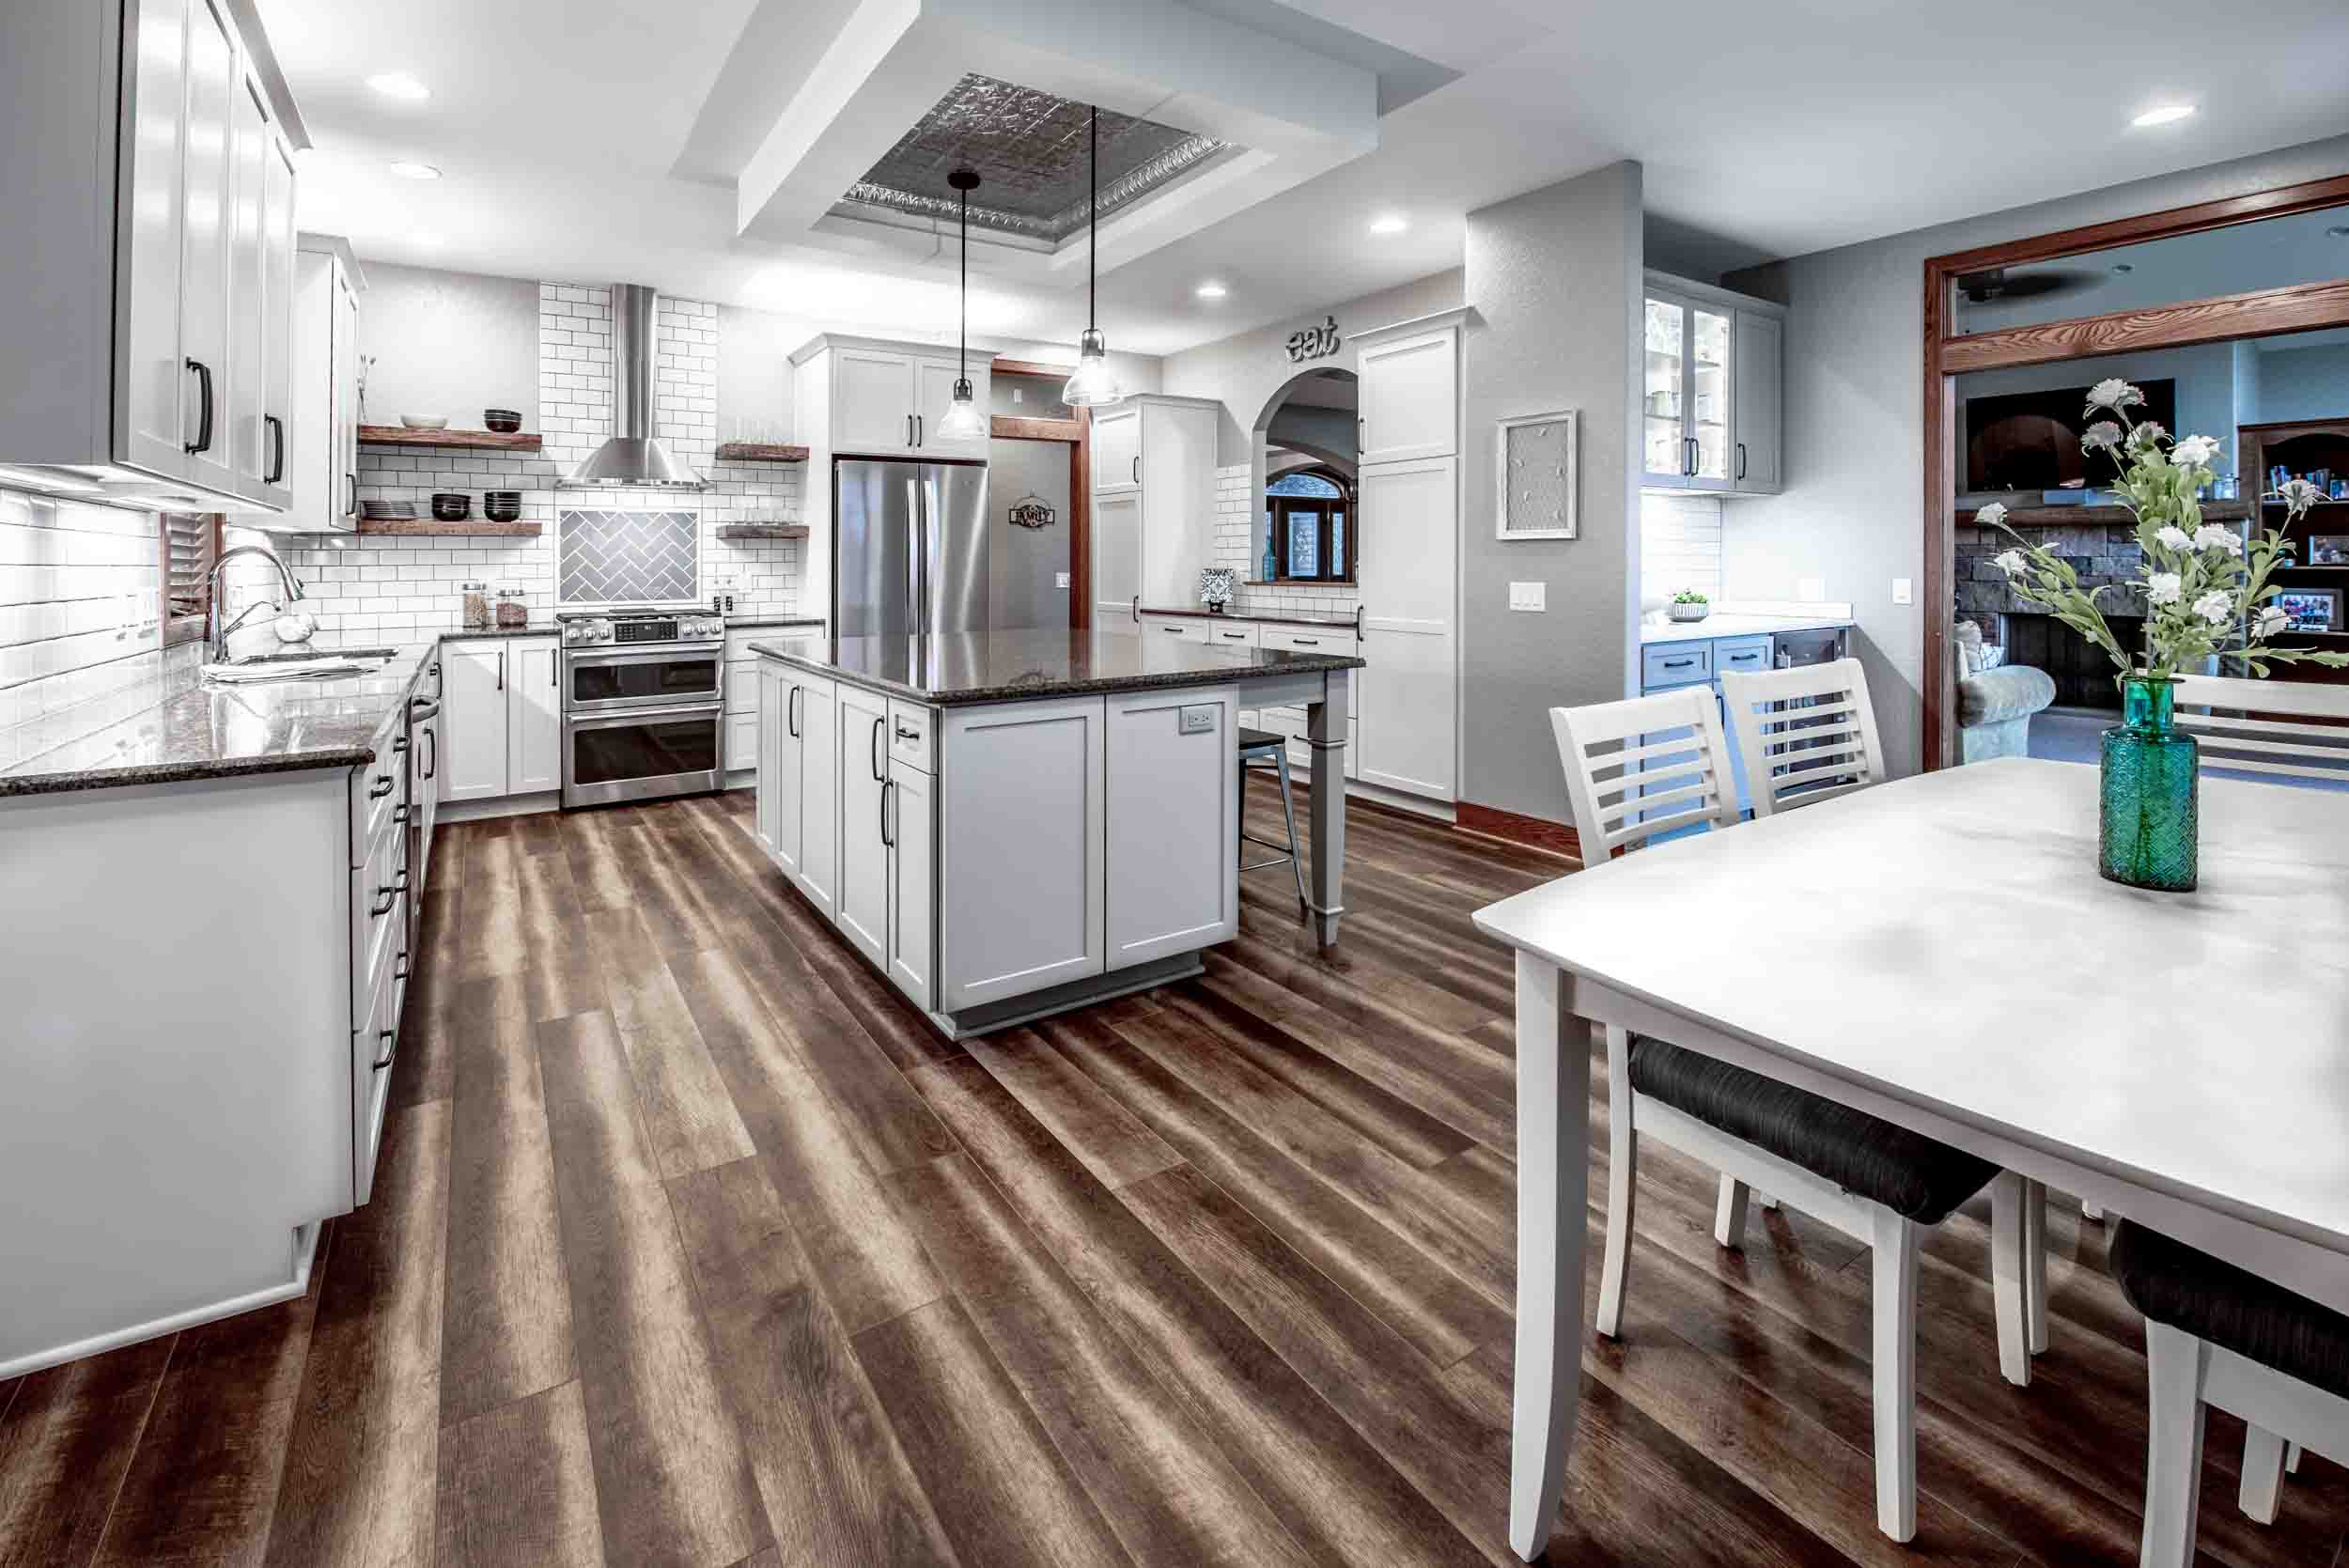 Kitchen Flooring by Coretec in Vineyard Barrel Driftwood